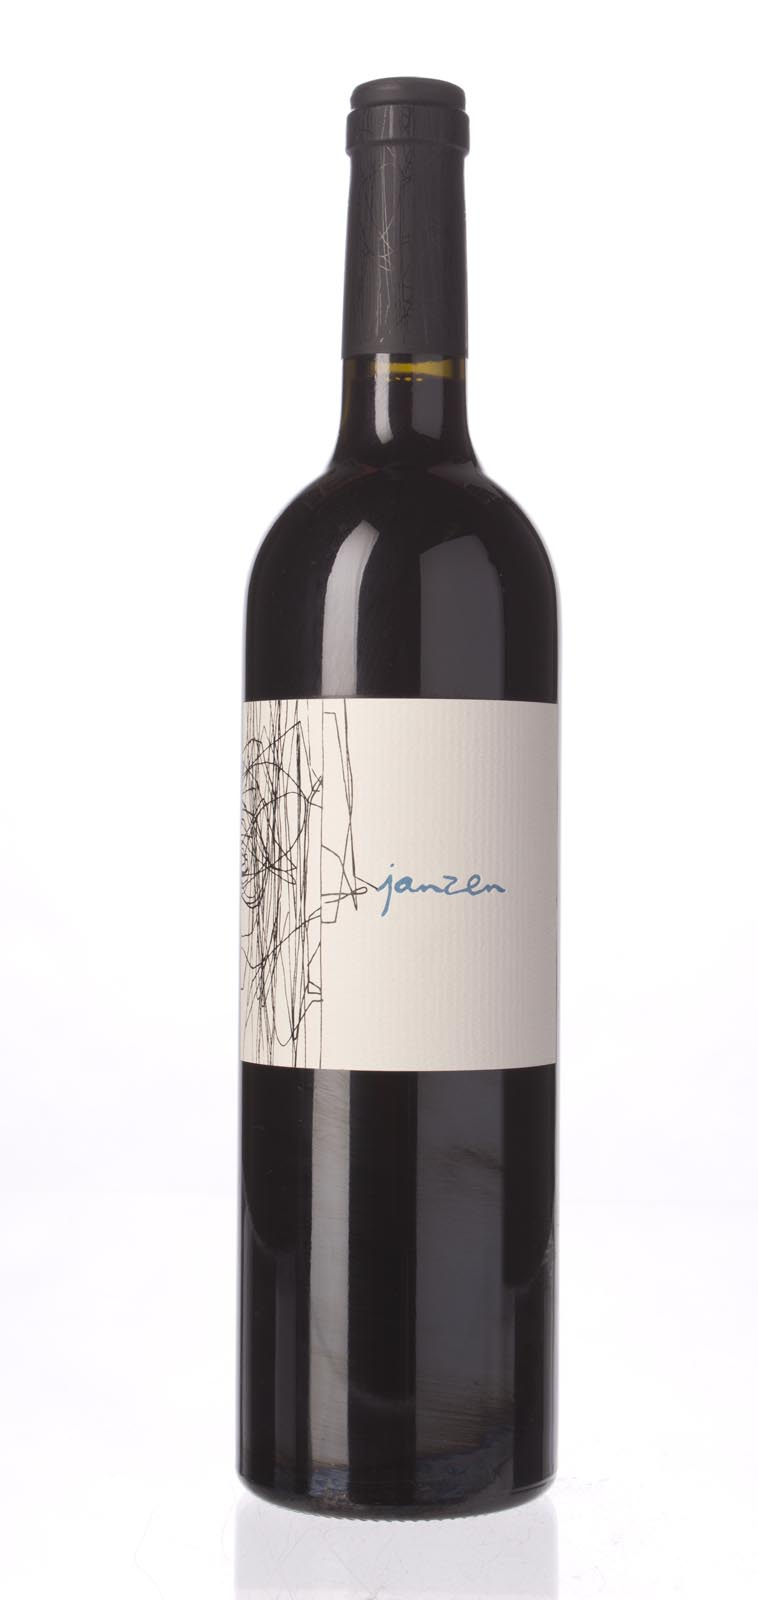 Janzen Cabernet Sauvignon Cloudy`s Vineyard 2005, 750mL (WA91) from The BPW - Merchants of rare and fine wines.